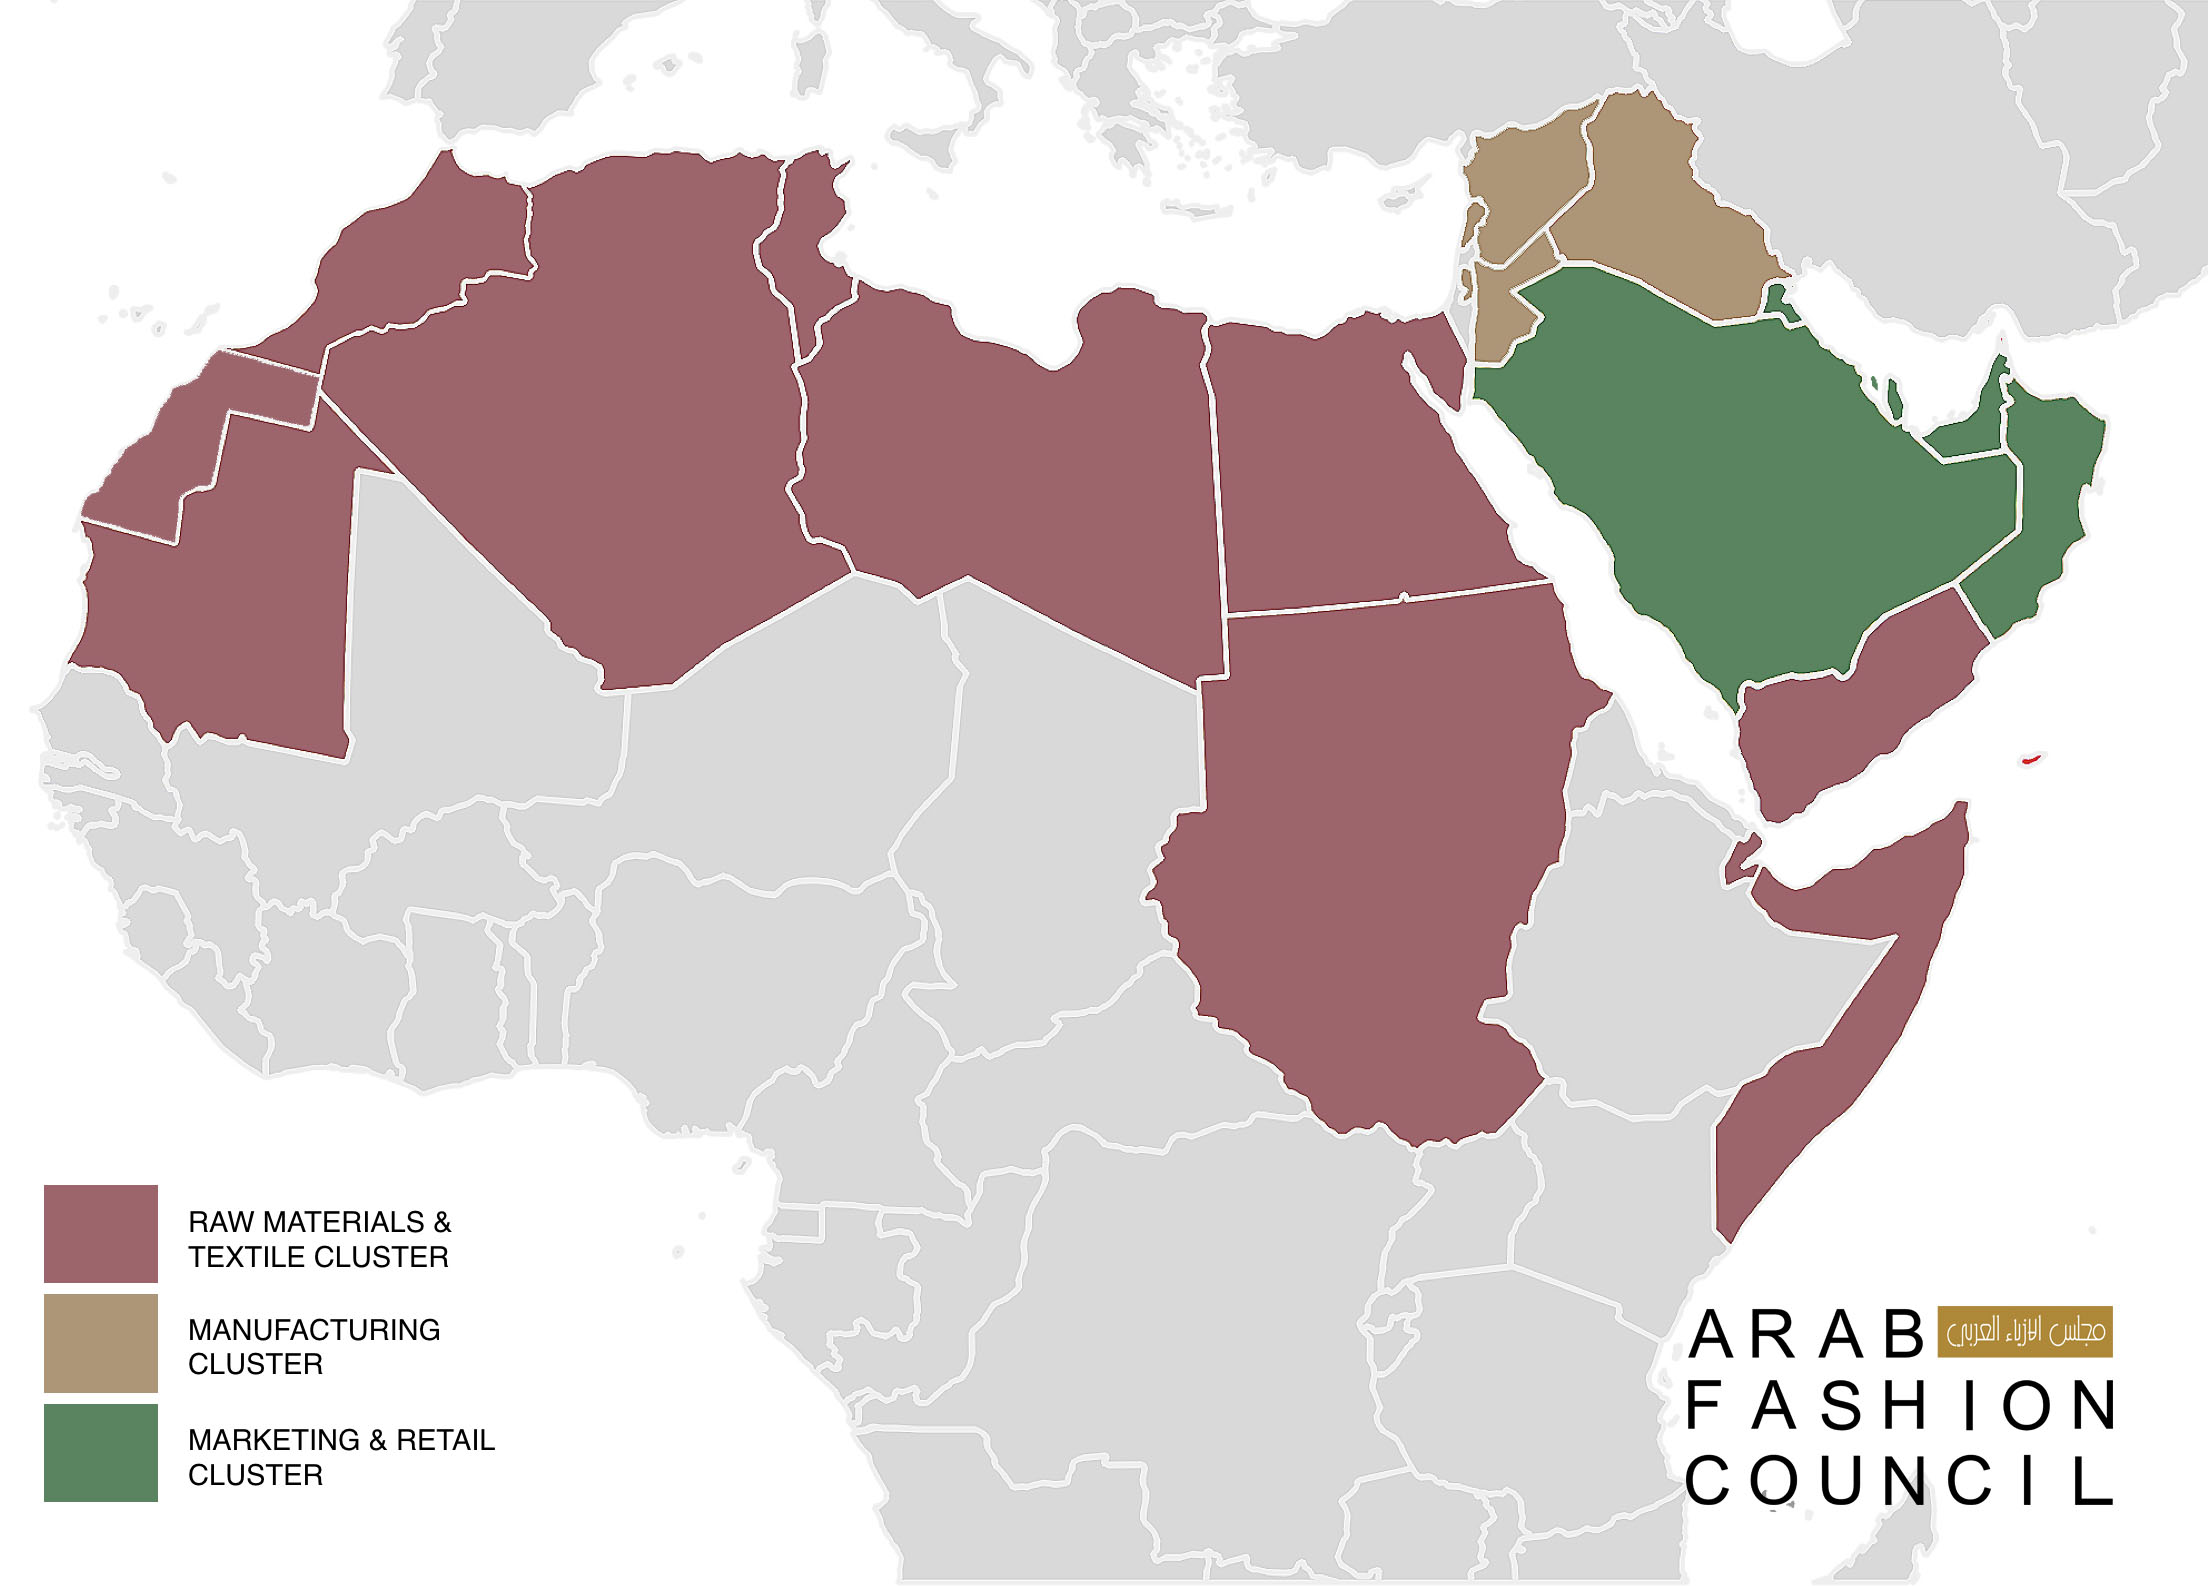 ARAB FASHION SYSTEM - ARAB FASHION COUNCIL - Vision